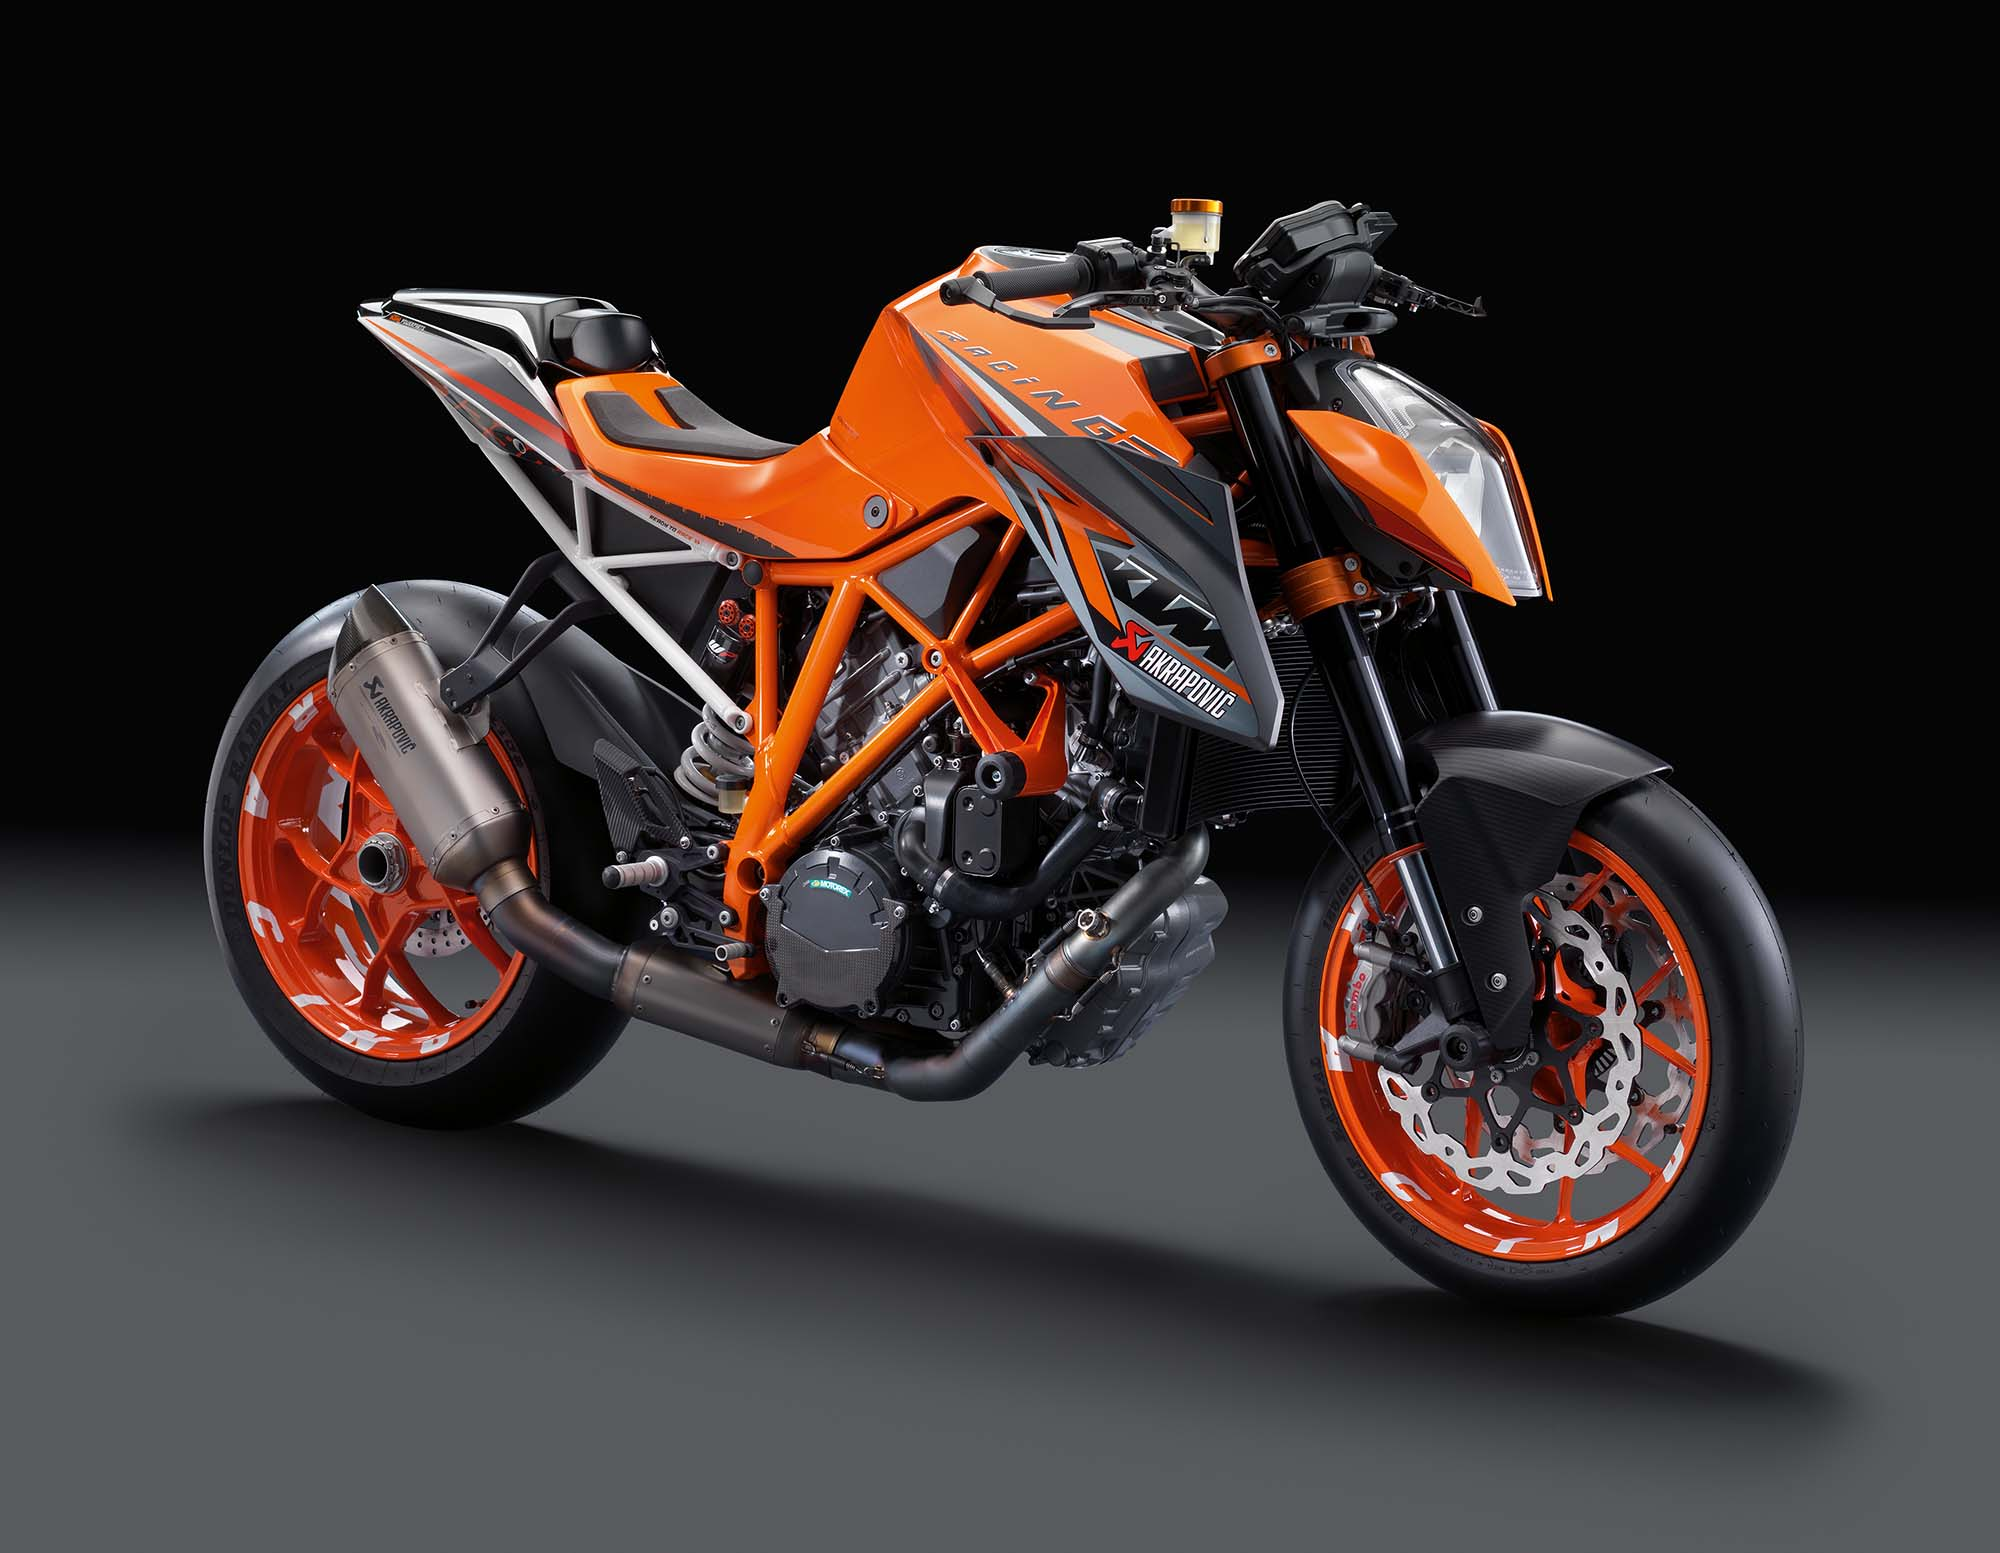 38 hi res photos of the ktm 1290 super duke r. Black Bedroom Furniture Sets. Home Design Ideas